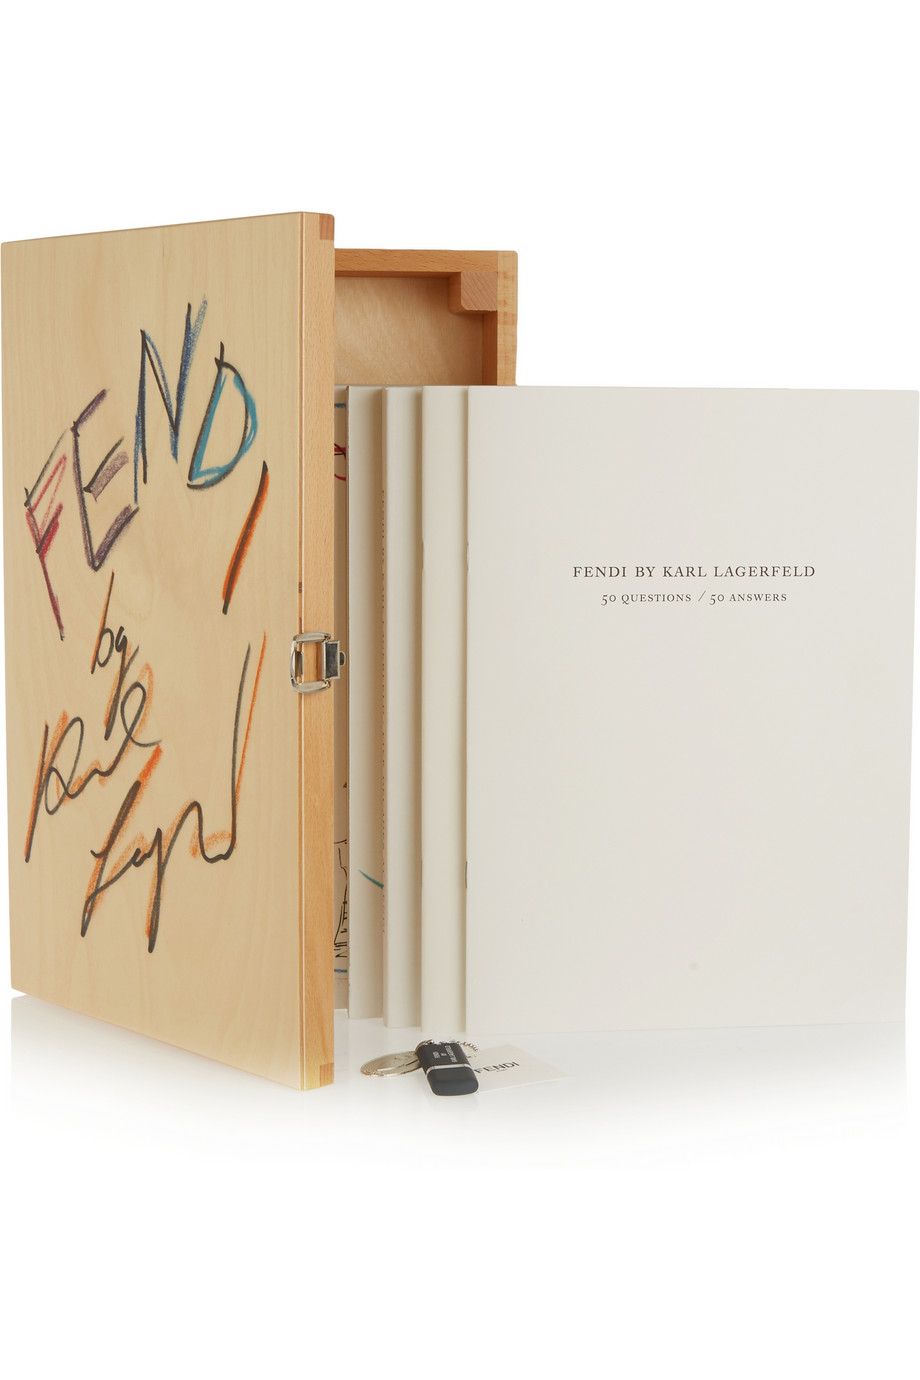 Caffee Table Books Karl Lagerfeld Fendi 50 Years 1